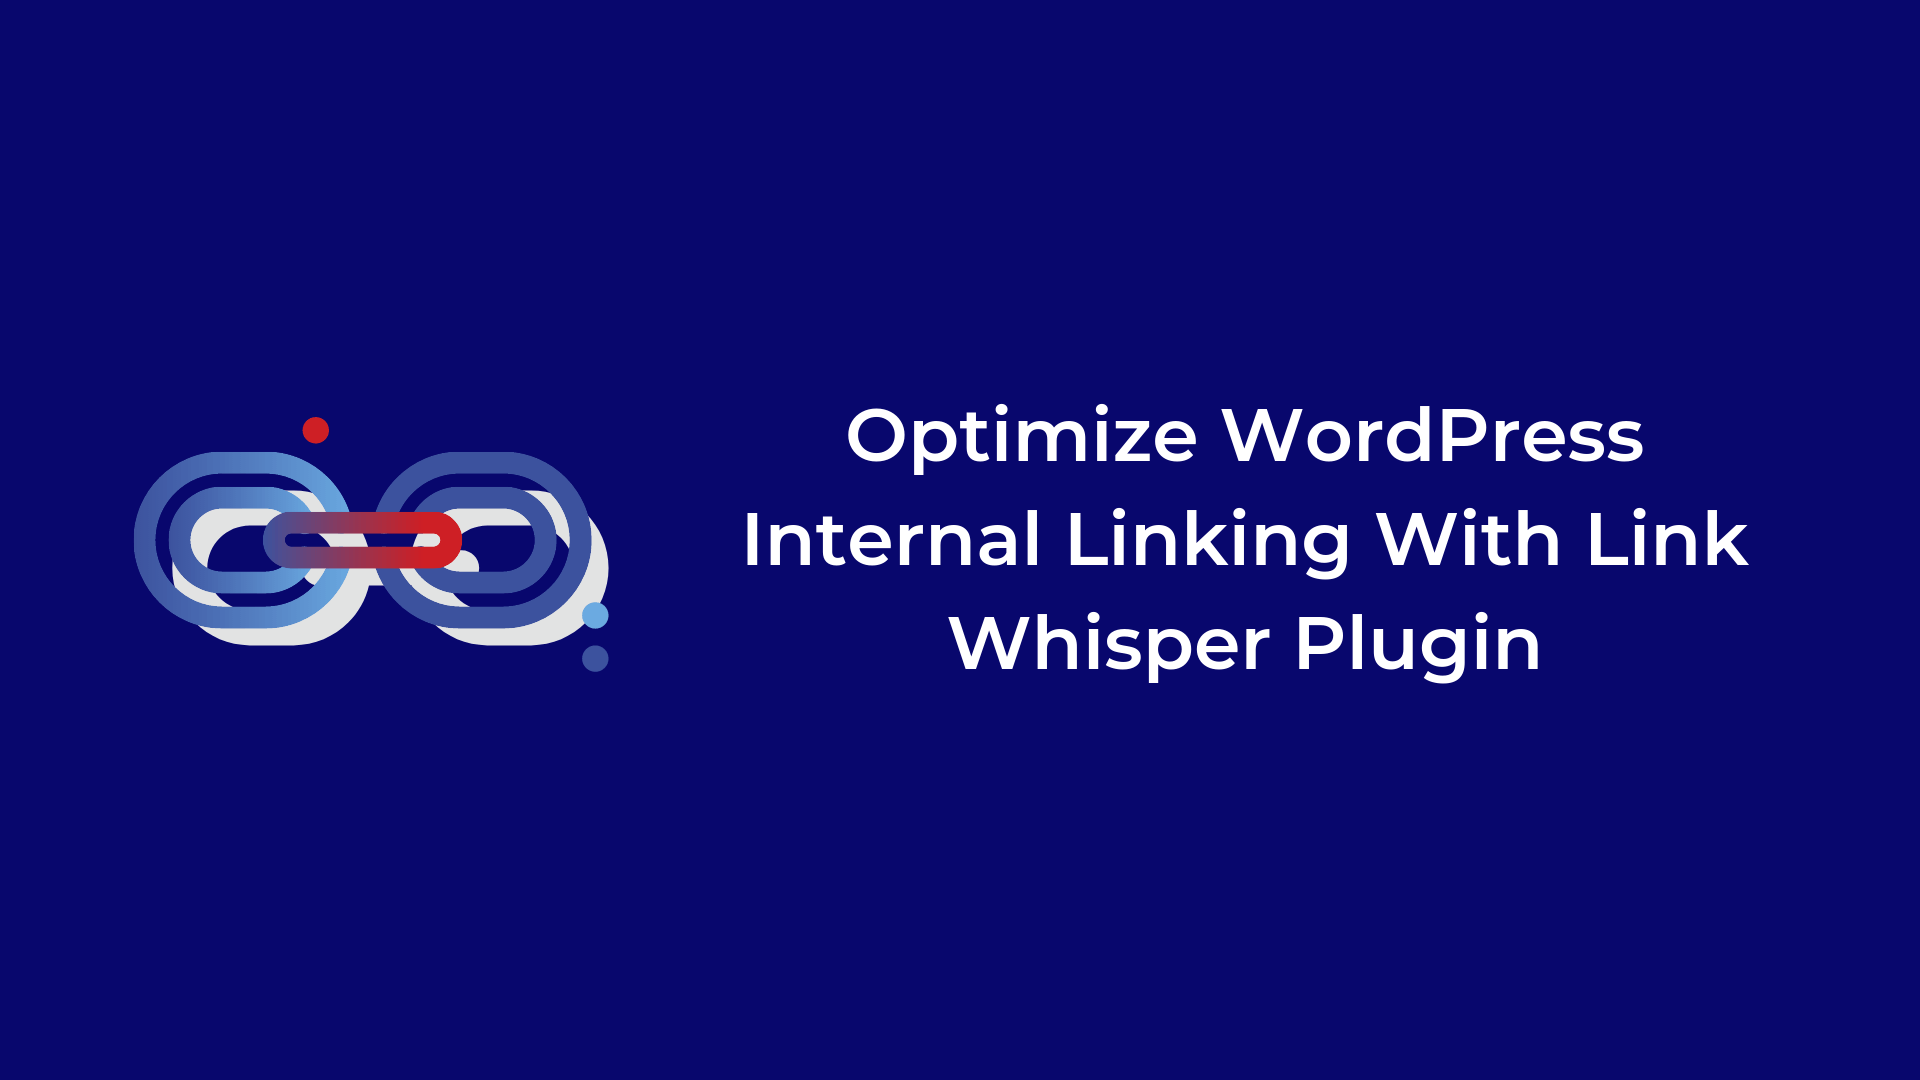 better-Internal-Linking-With-Link-Whisper-Plugin